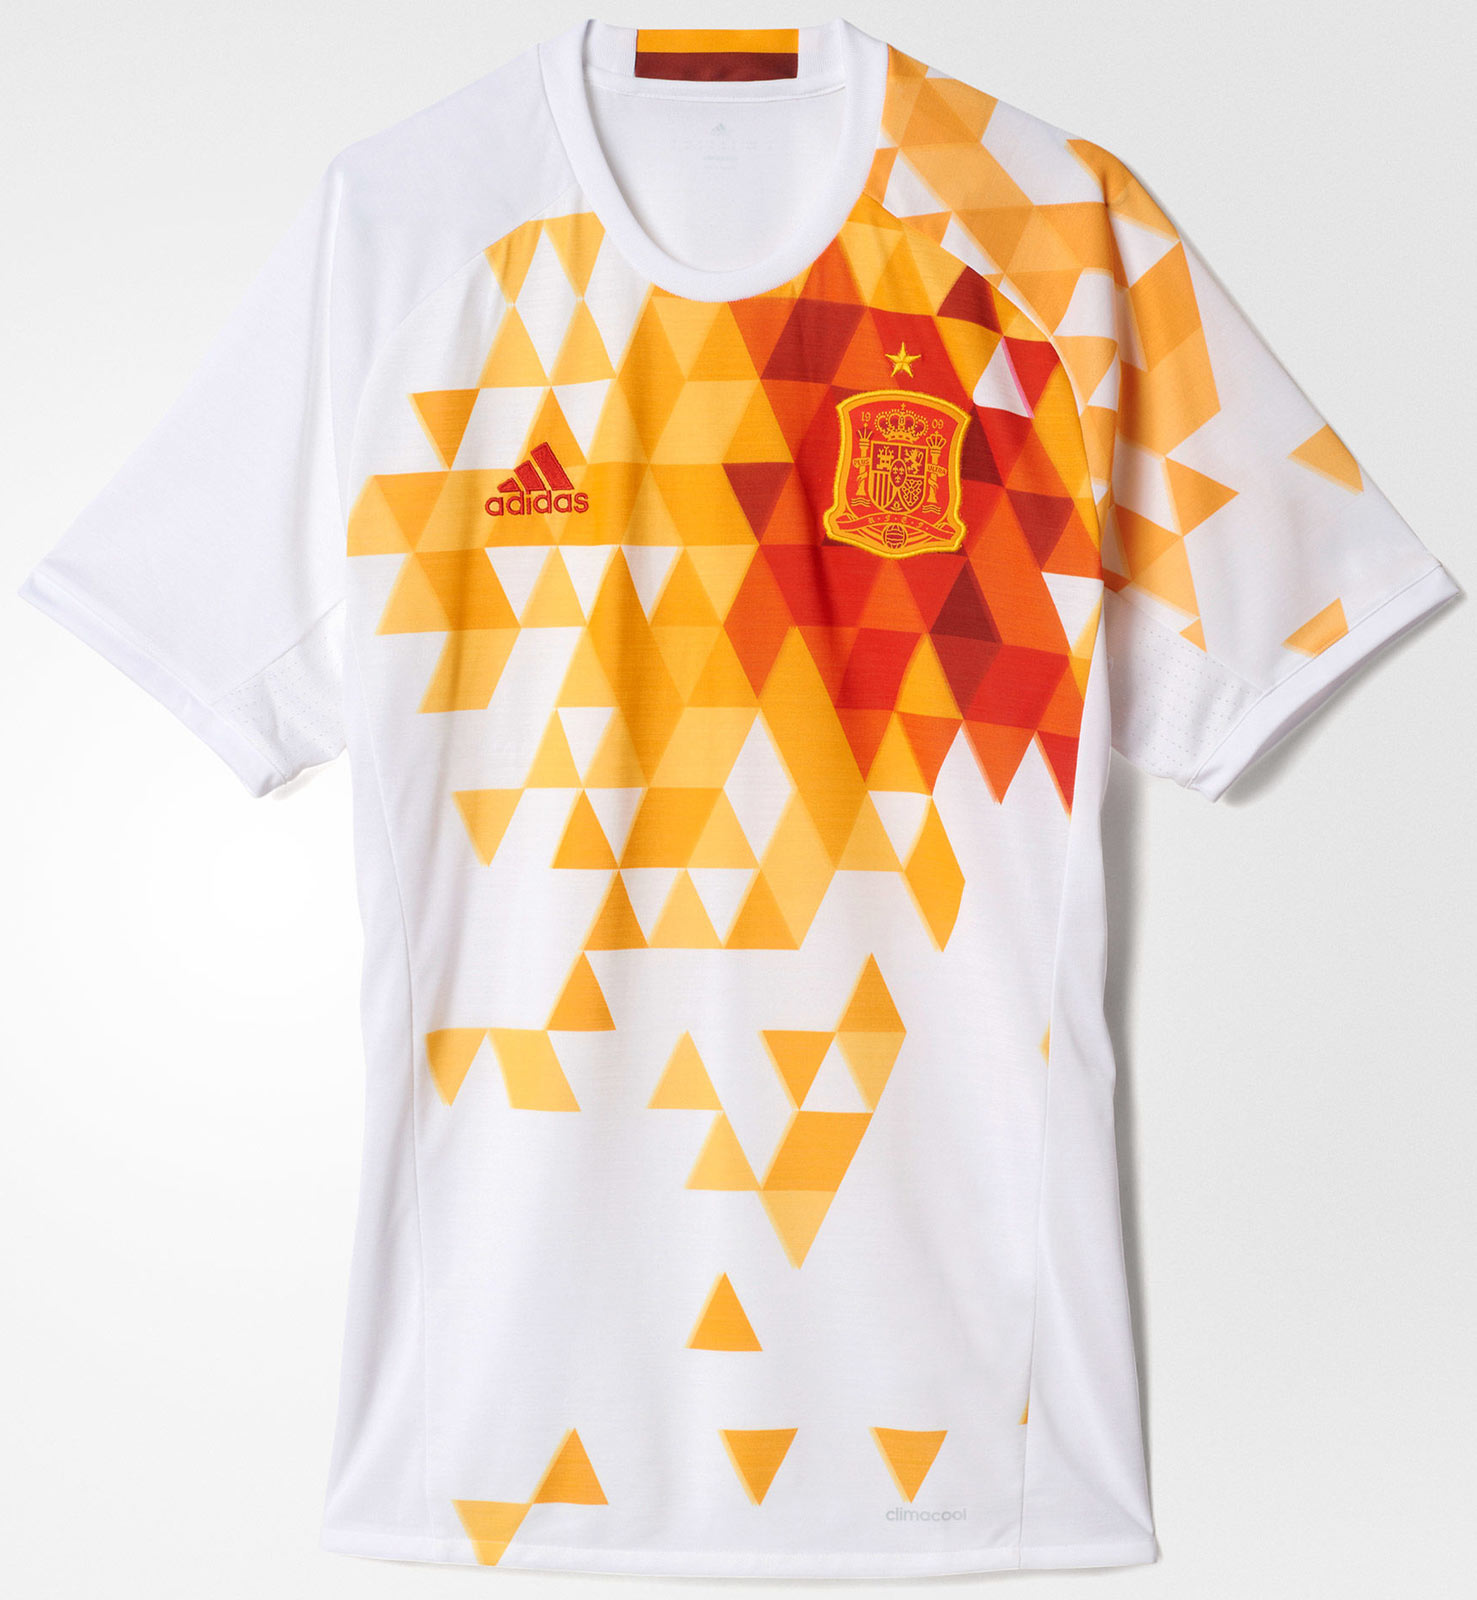 138d6d00f43 Spain Away/Source: Adidas